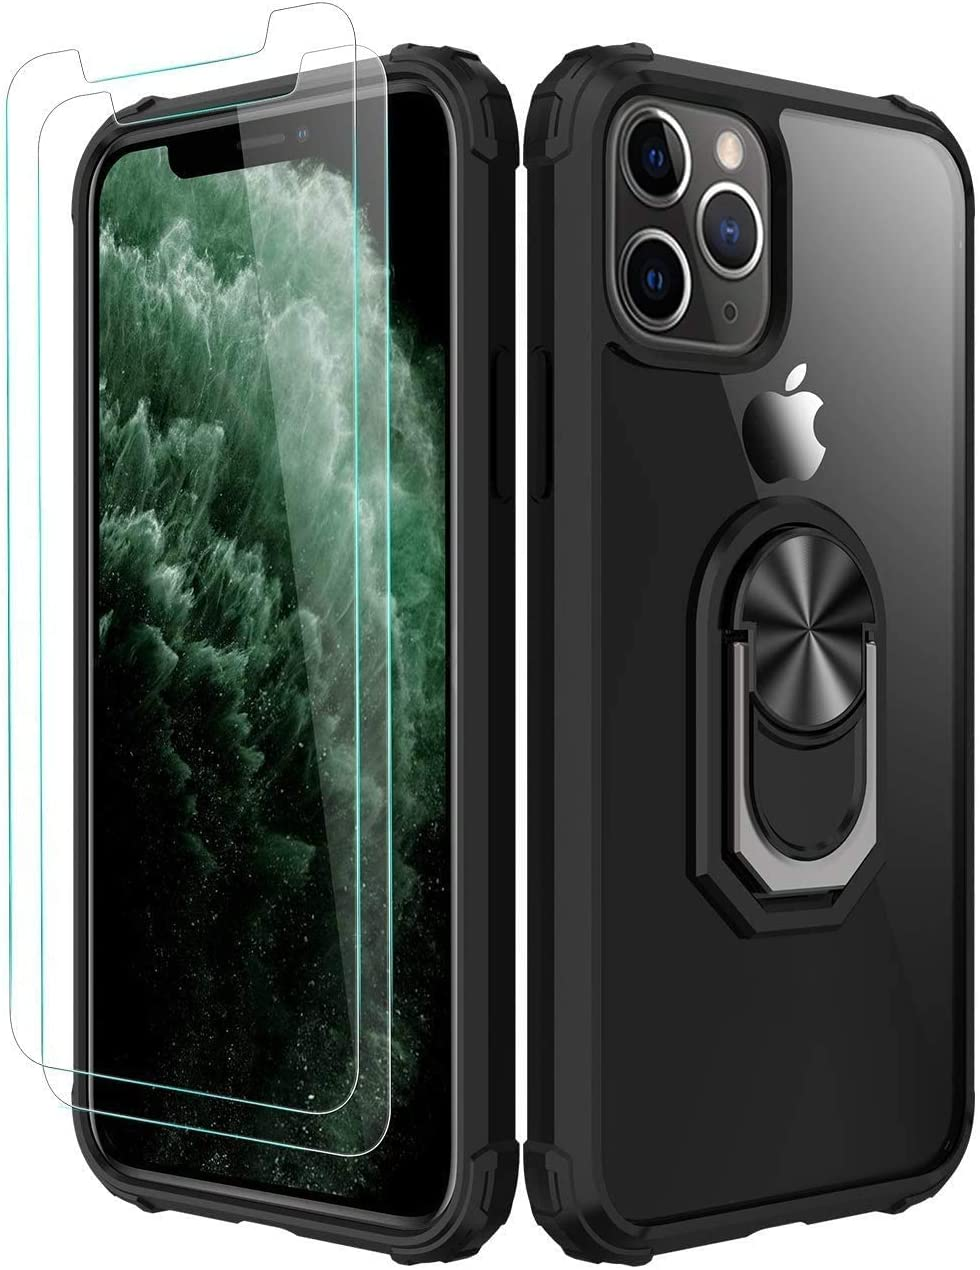 Amuoc iPhone 11 Pro Max Case,[ Military Grade] with [Glass Screen Protector]15ft. Drop Tested Protective Case Kickstand Compatible with Apple iPhone 11Pro Max -Black